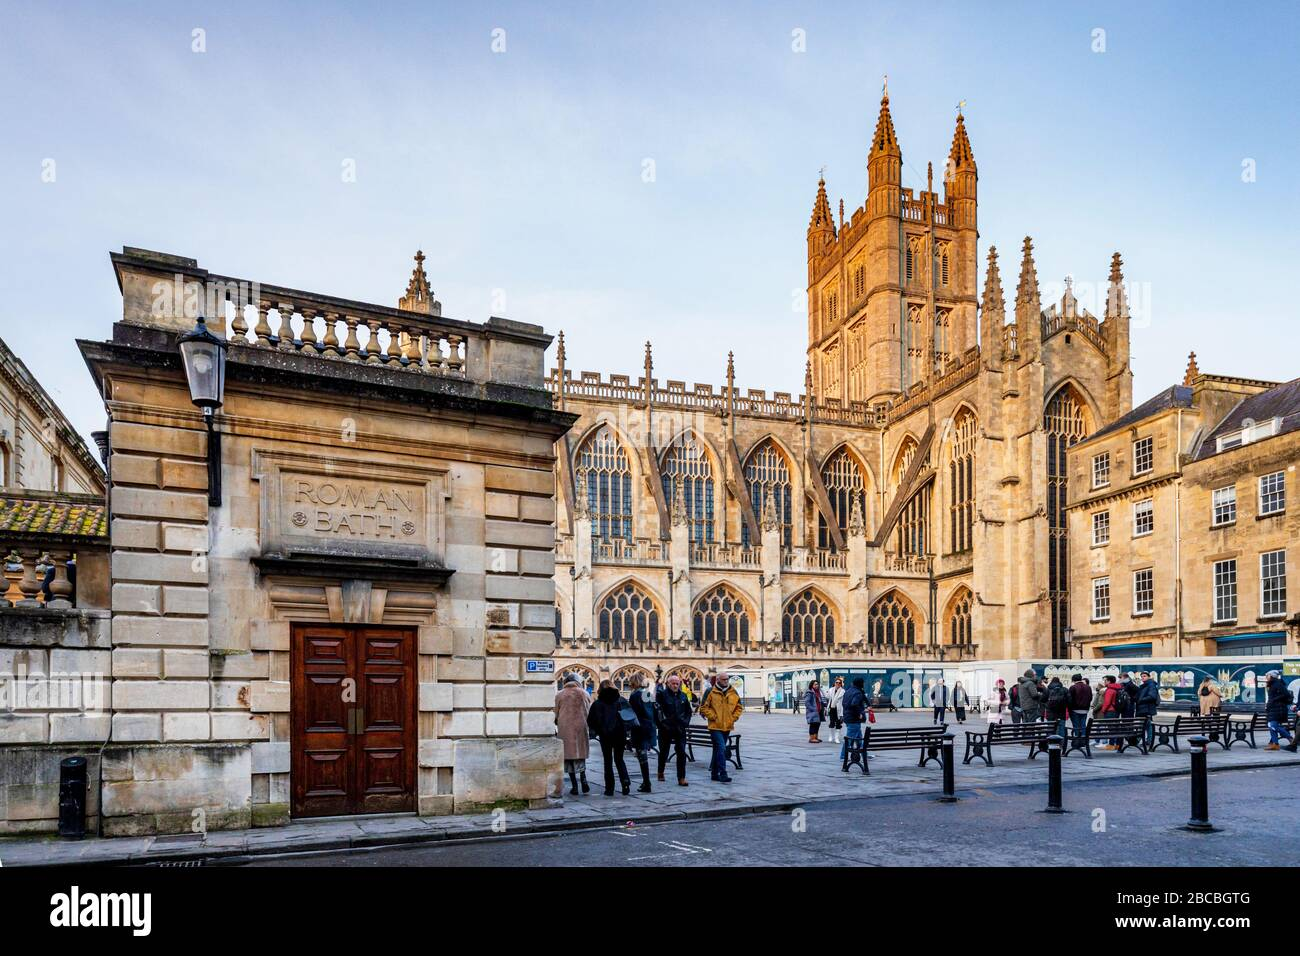 Old entrance to the Roman Baths with Bath Abbey, Bath, Somerset, England, UK Stock Photo